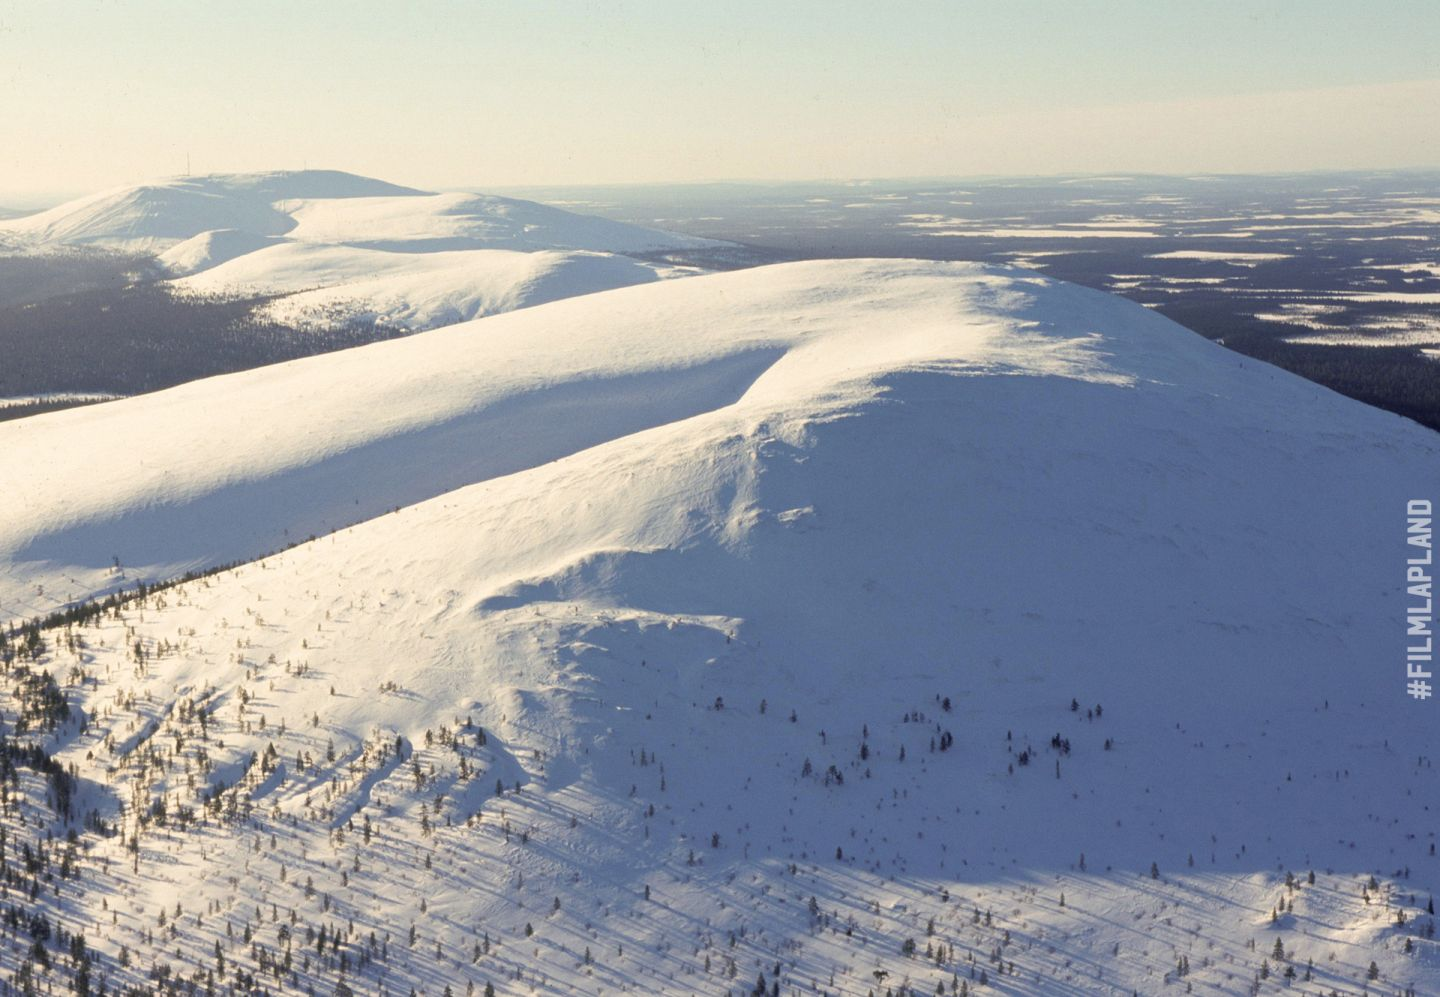 Snow-covered hills in Ylläs, Kolari, Finland